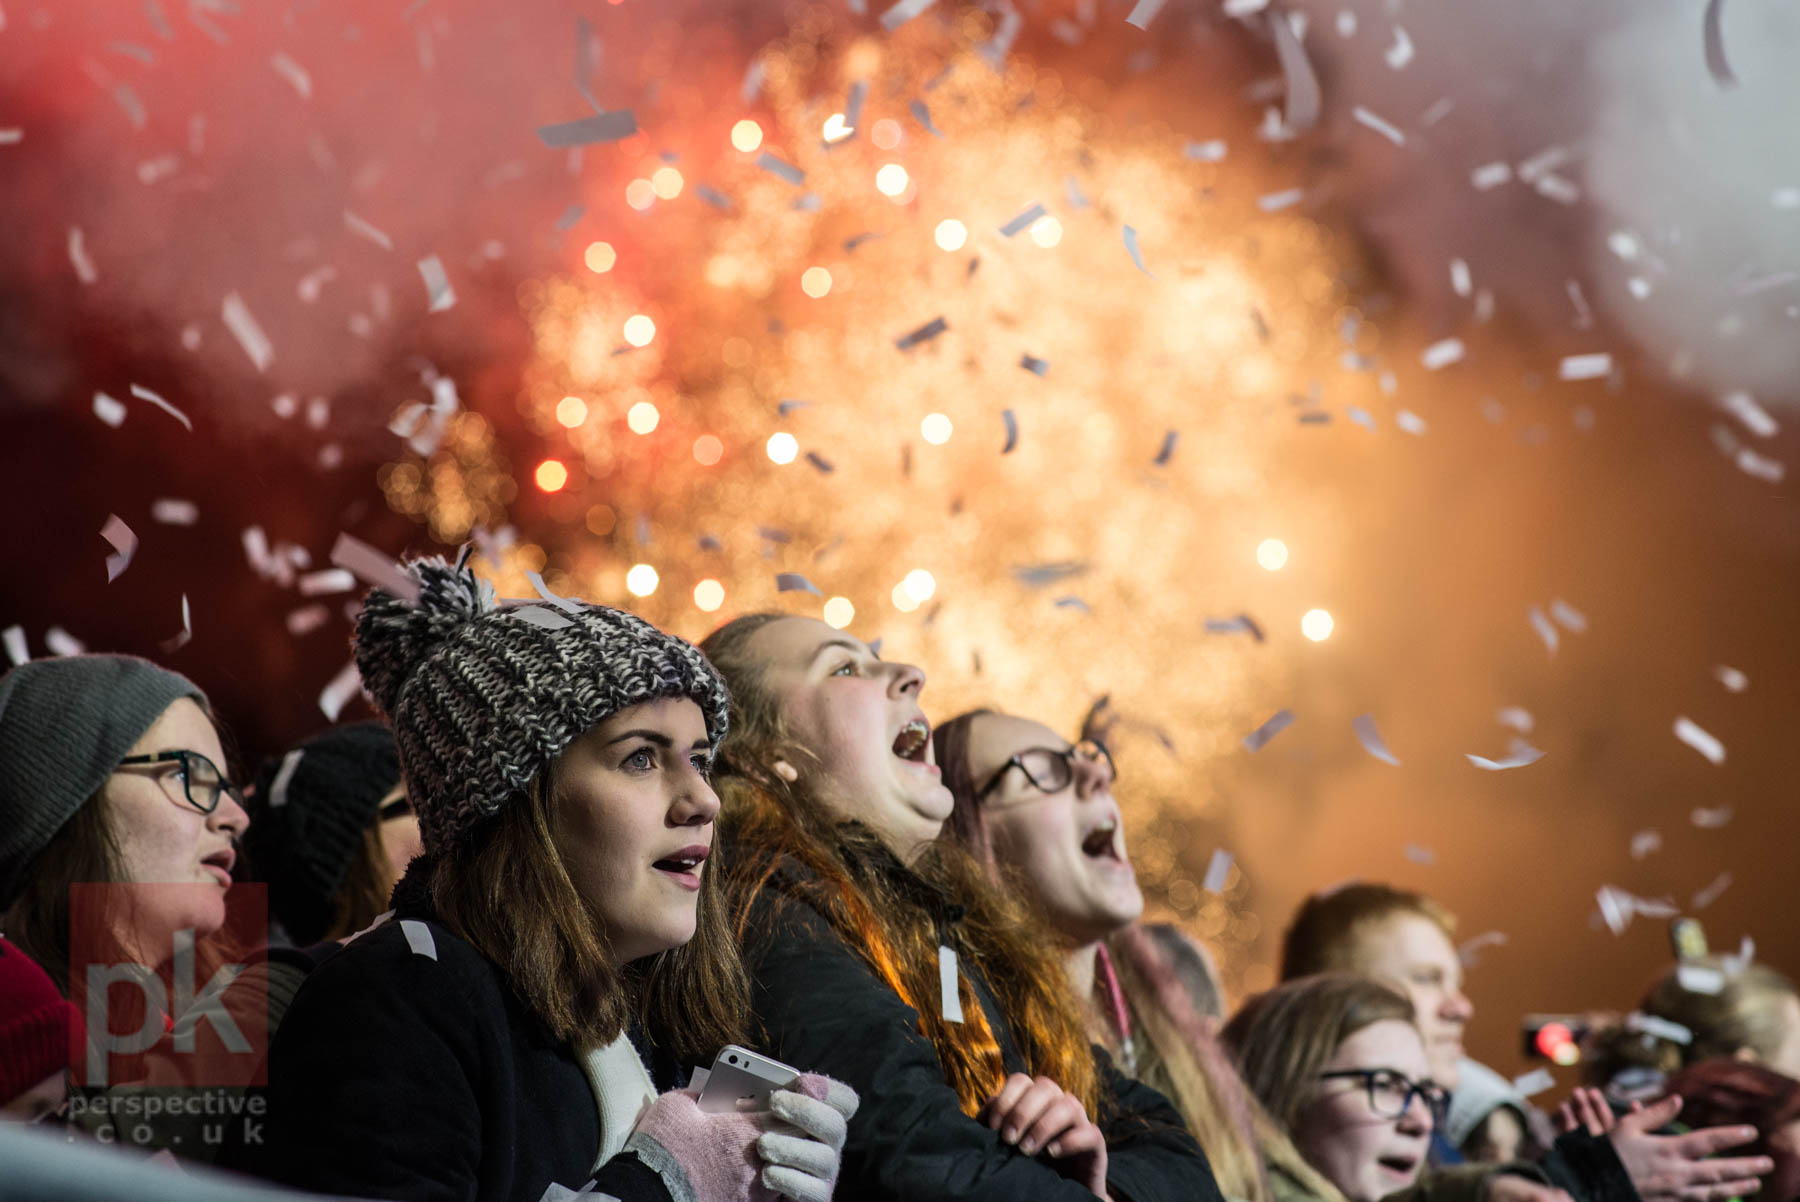 Locals singing away at the front of the main stage of the Christmas Light Switch On in Perth, with the fireworks and confetti cannon all going off at the same time.